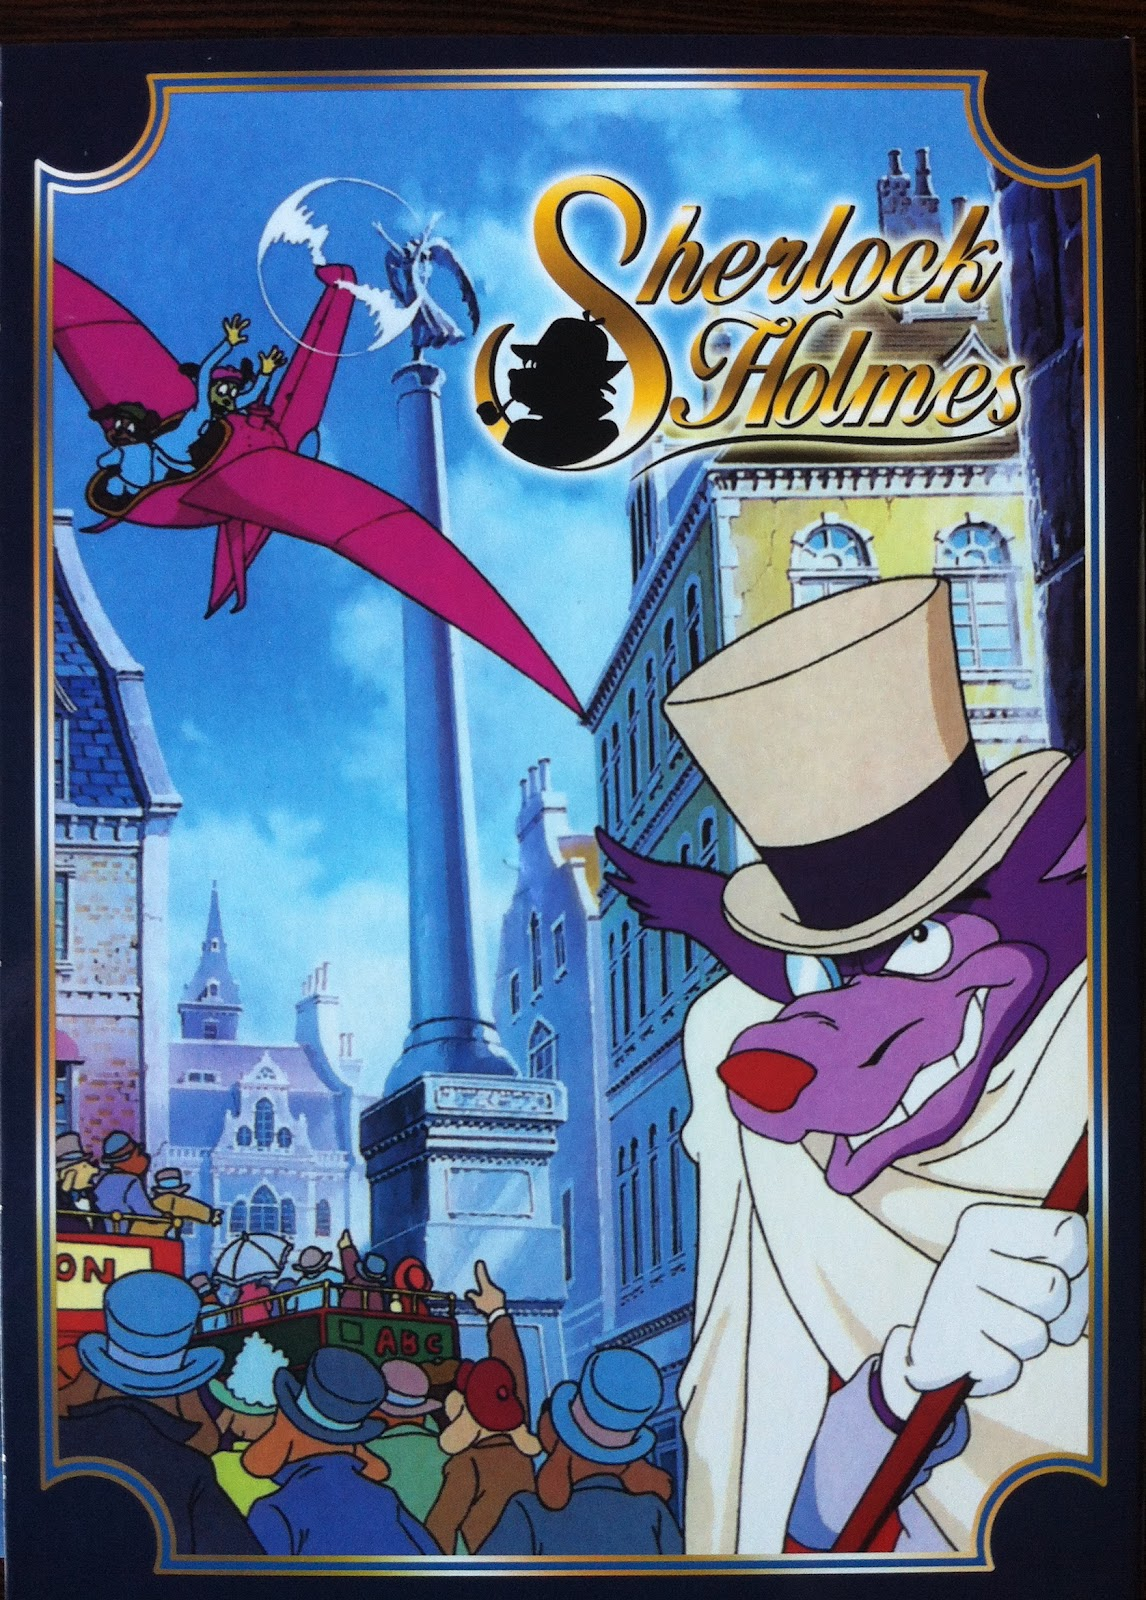 Magic doudou club dvd collection sherlock holmes - Magic le dessin anime ...